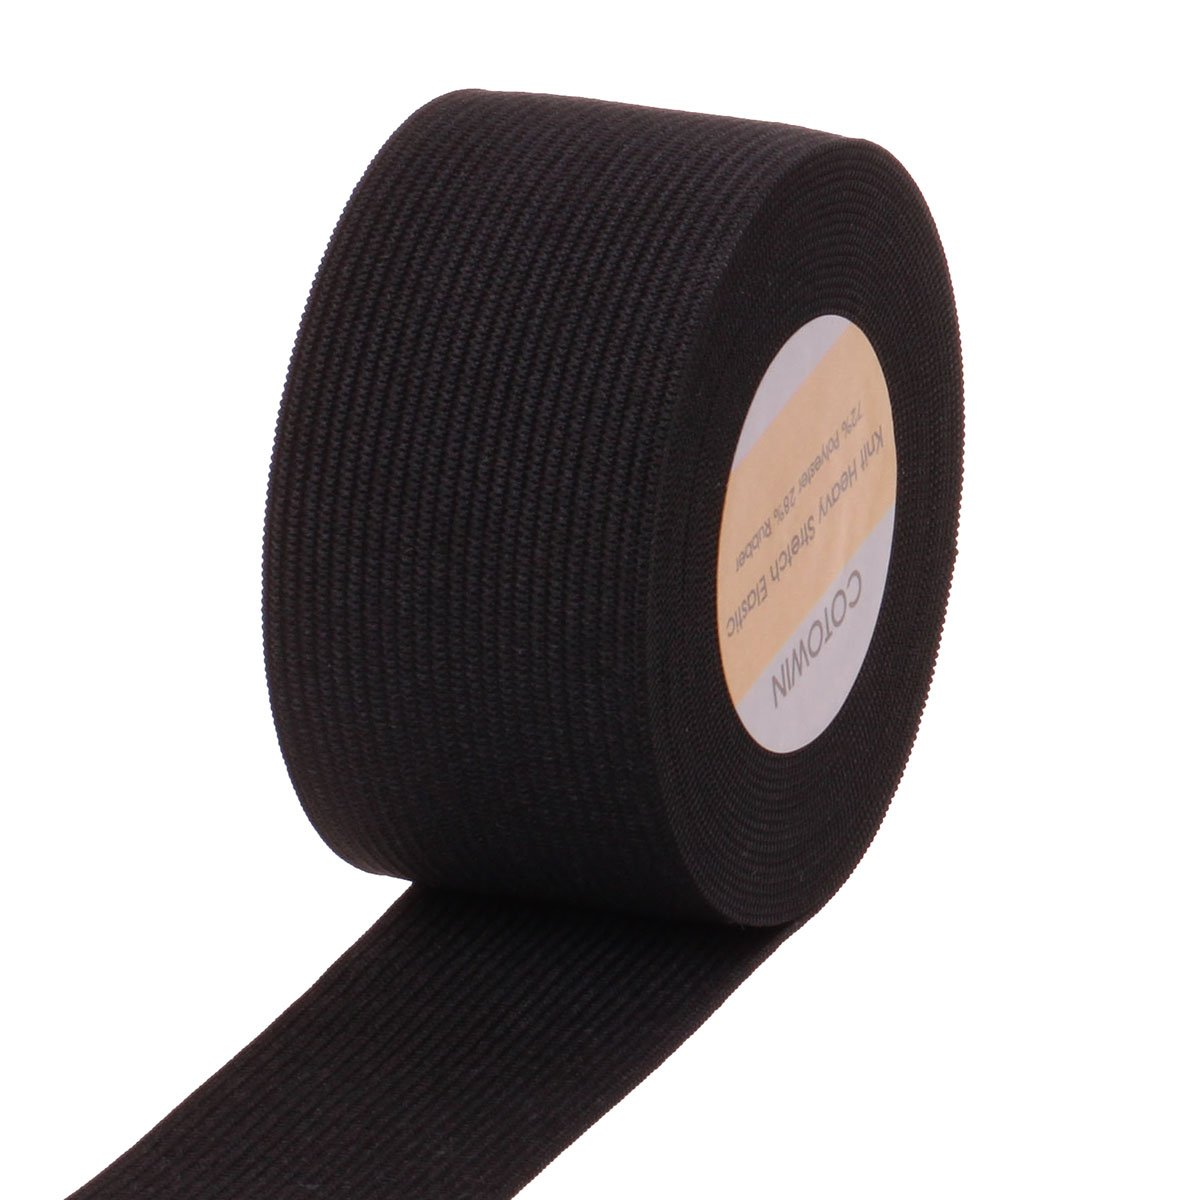 COTOWIN 1.5 Inch Wide Black Knit Heavy Stretch High Elasticity Elastic Band 5 Yards 4337000308